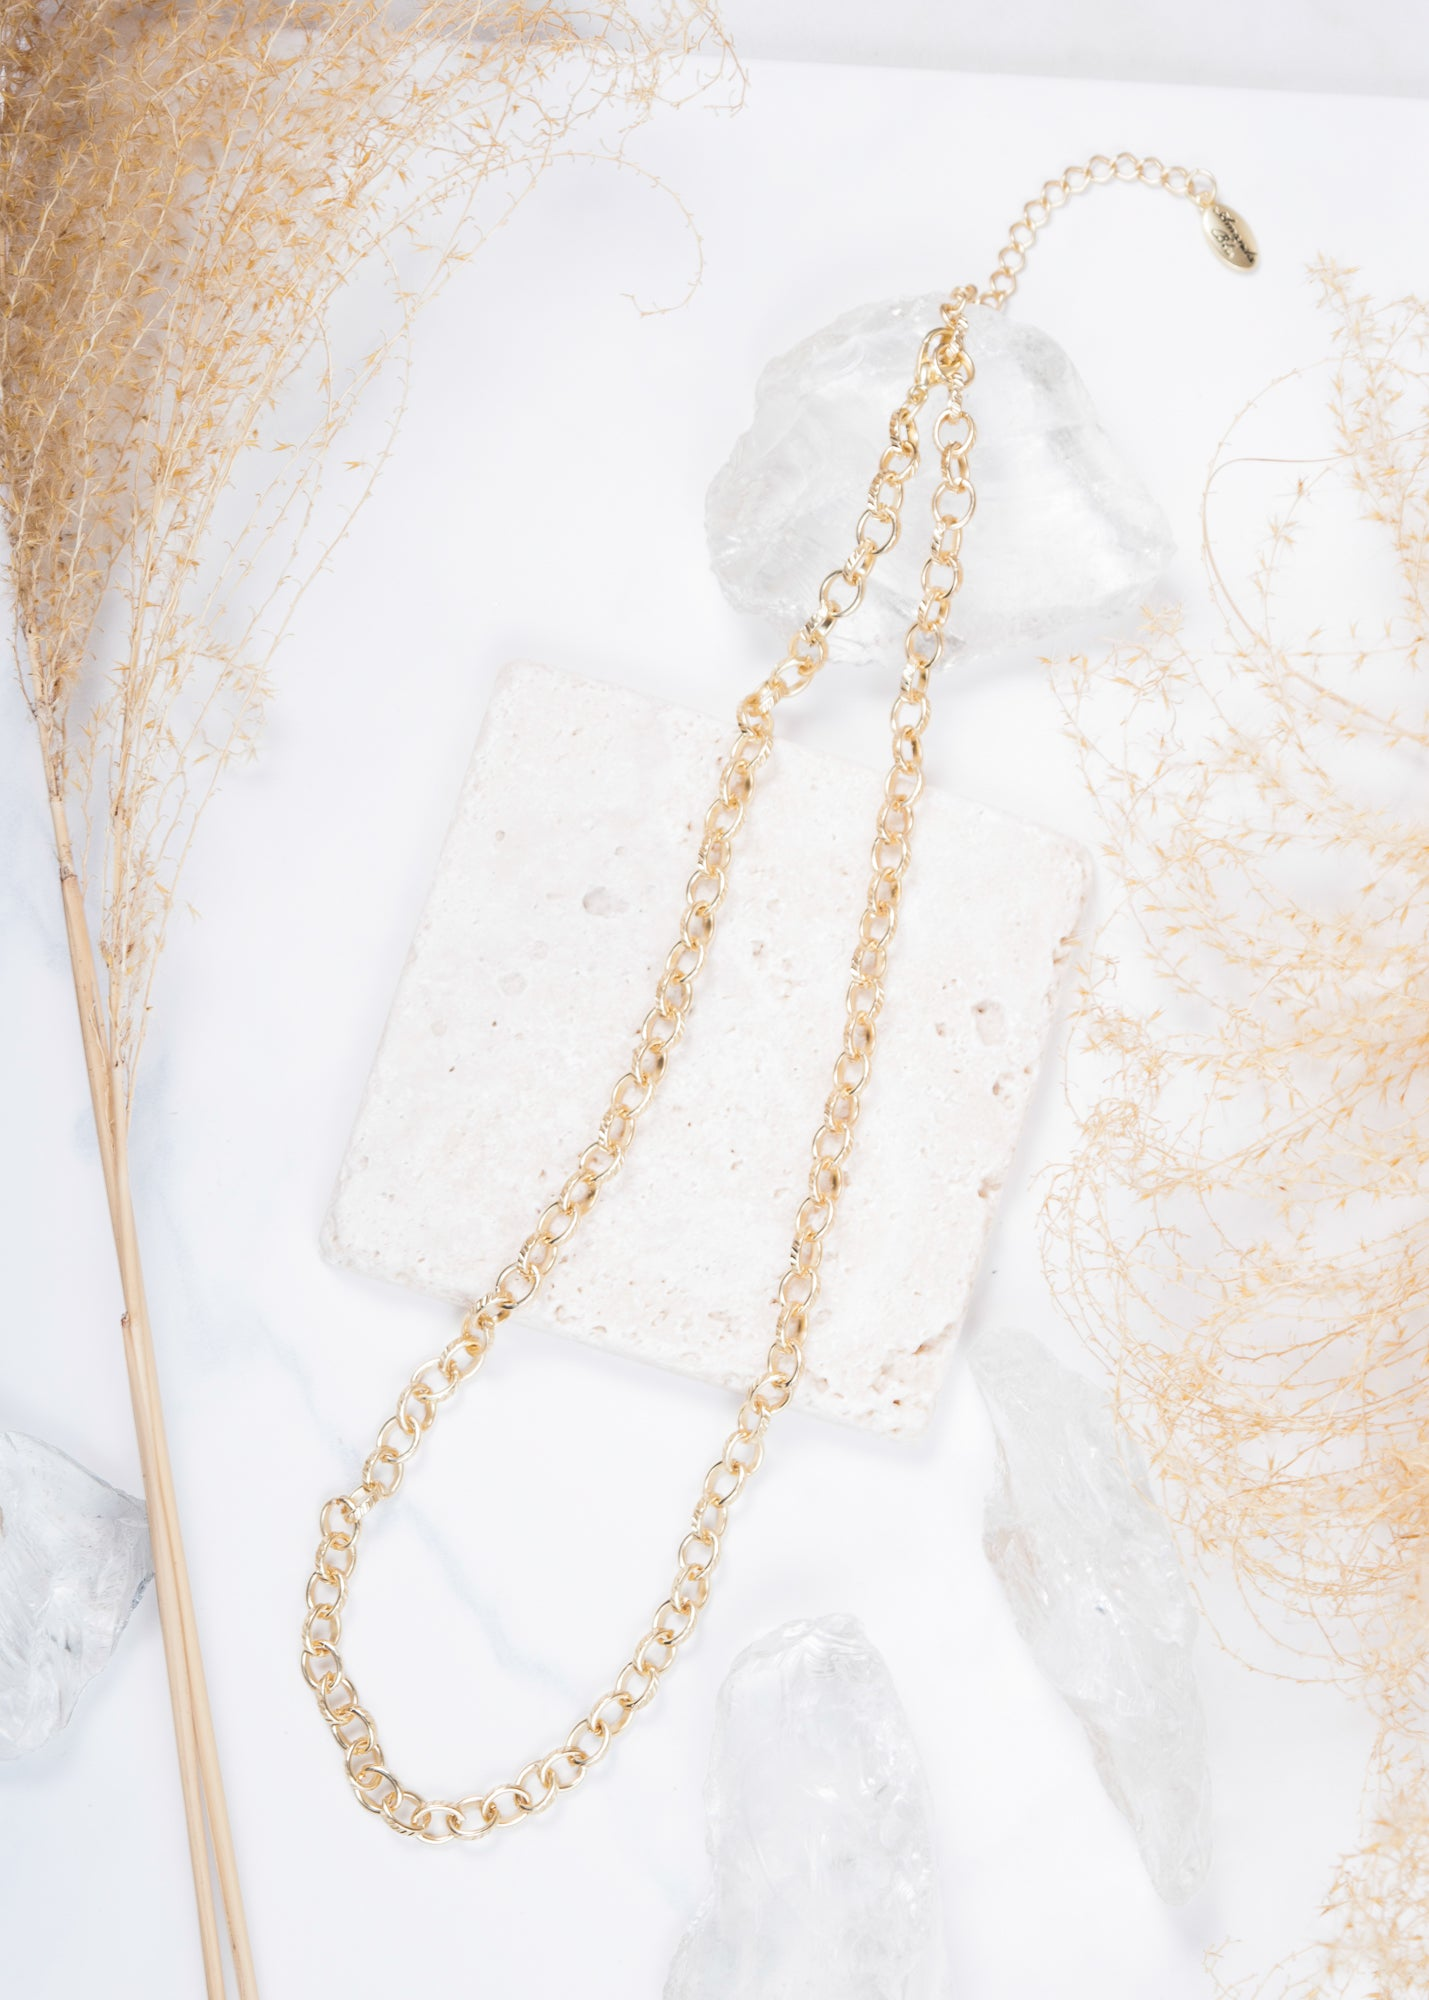 Heartfelt Emotions Chain Necklace - Matte Gold